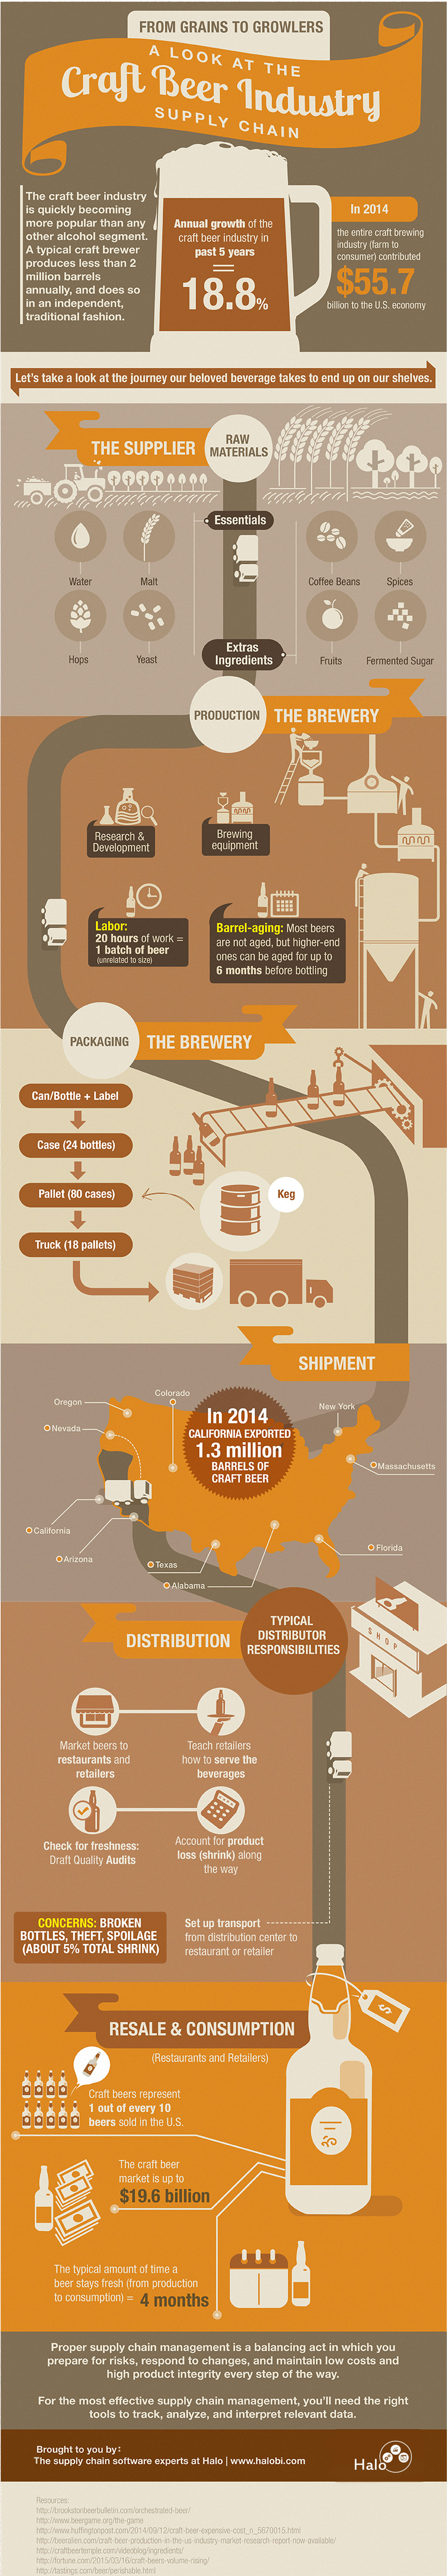 From Grains to Growlers: A Look at the Craft Beer Industry Supply Chain